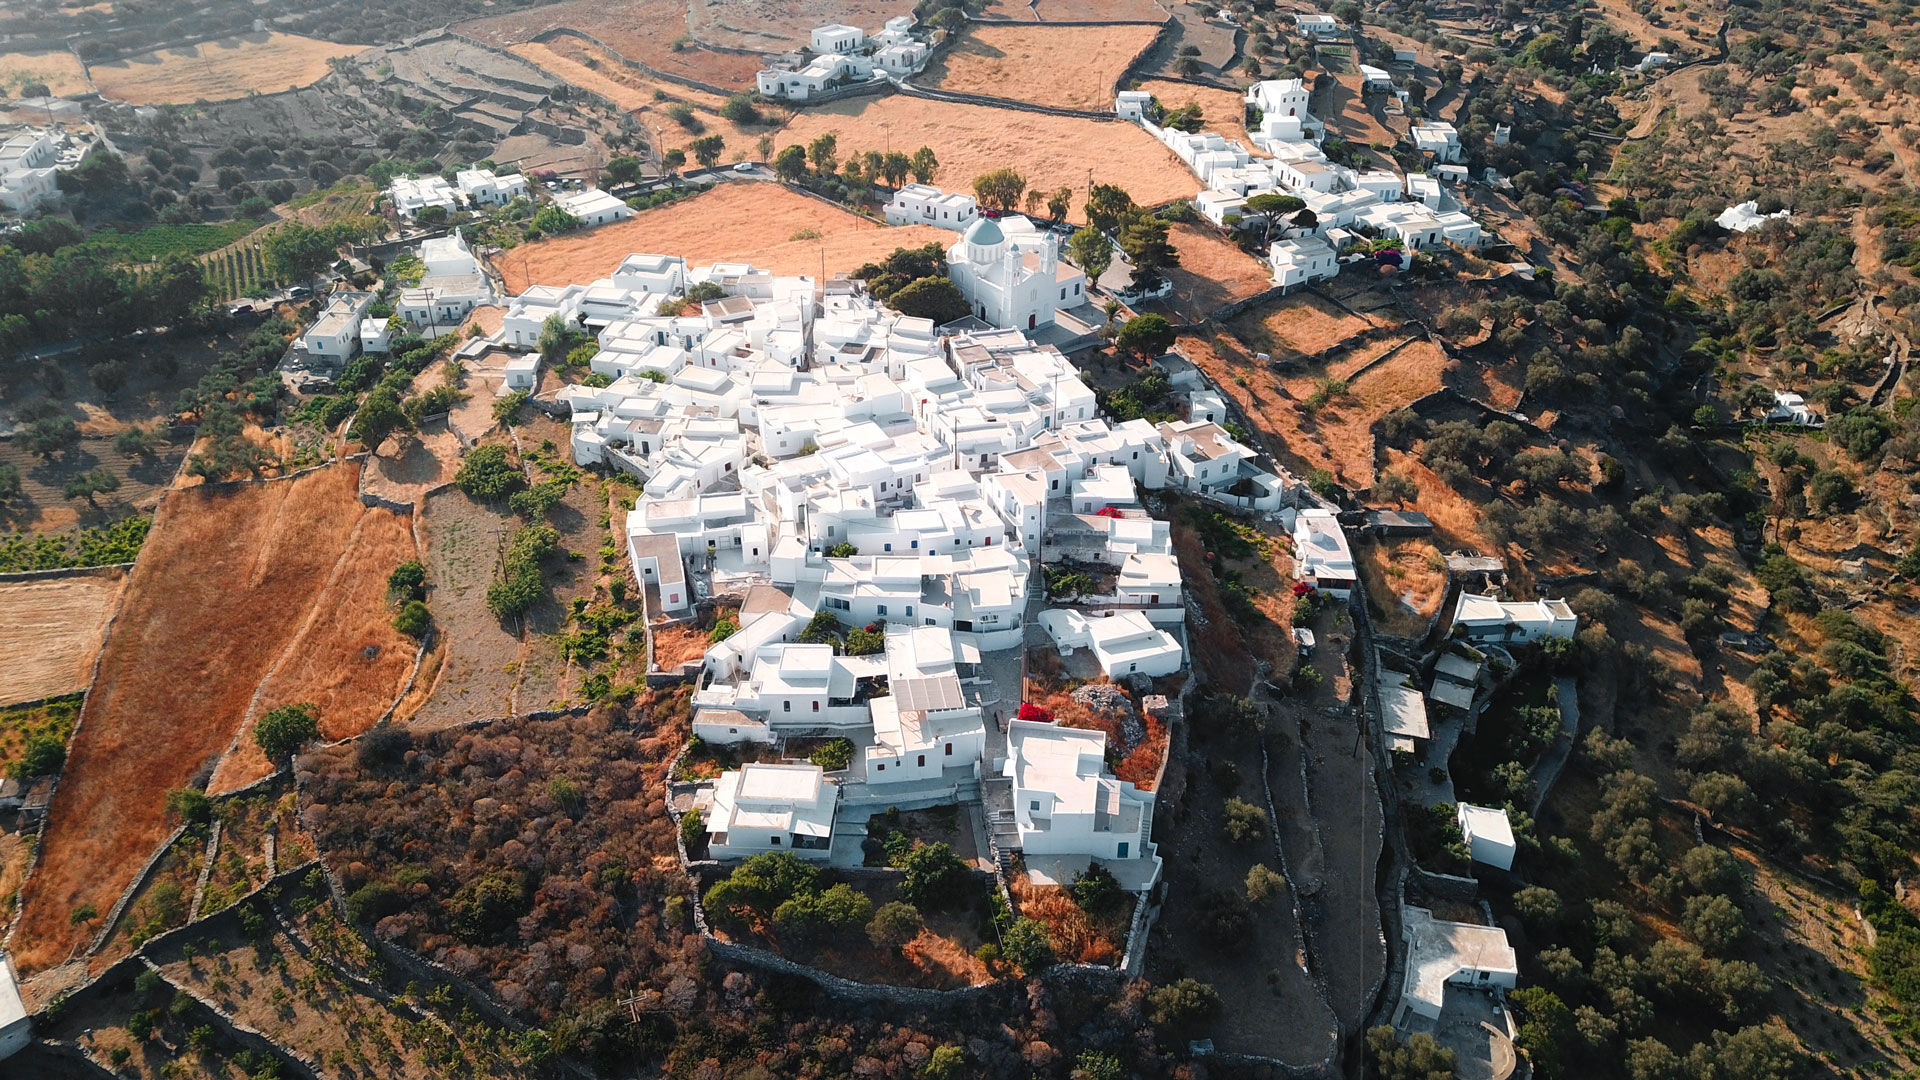 What greater invitation can there be to explore Apollonia, the main town of Sifnos, than the sight of all those little whitewashed houses speckled on the mountainside